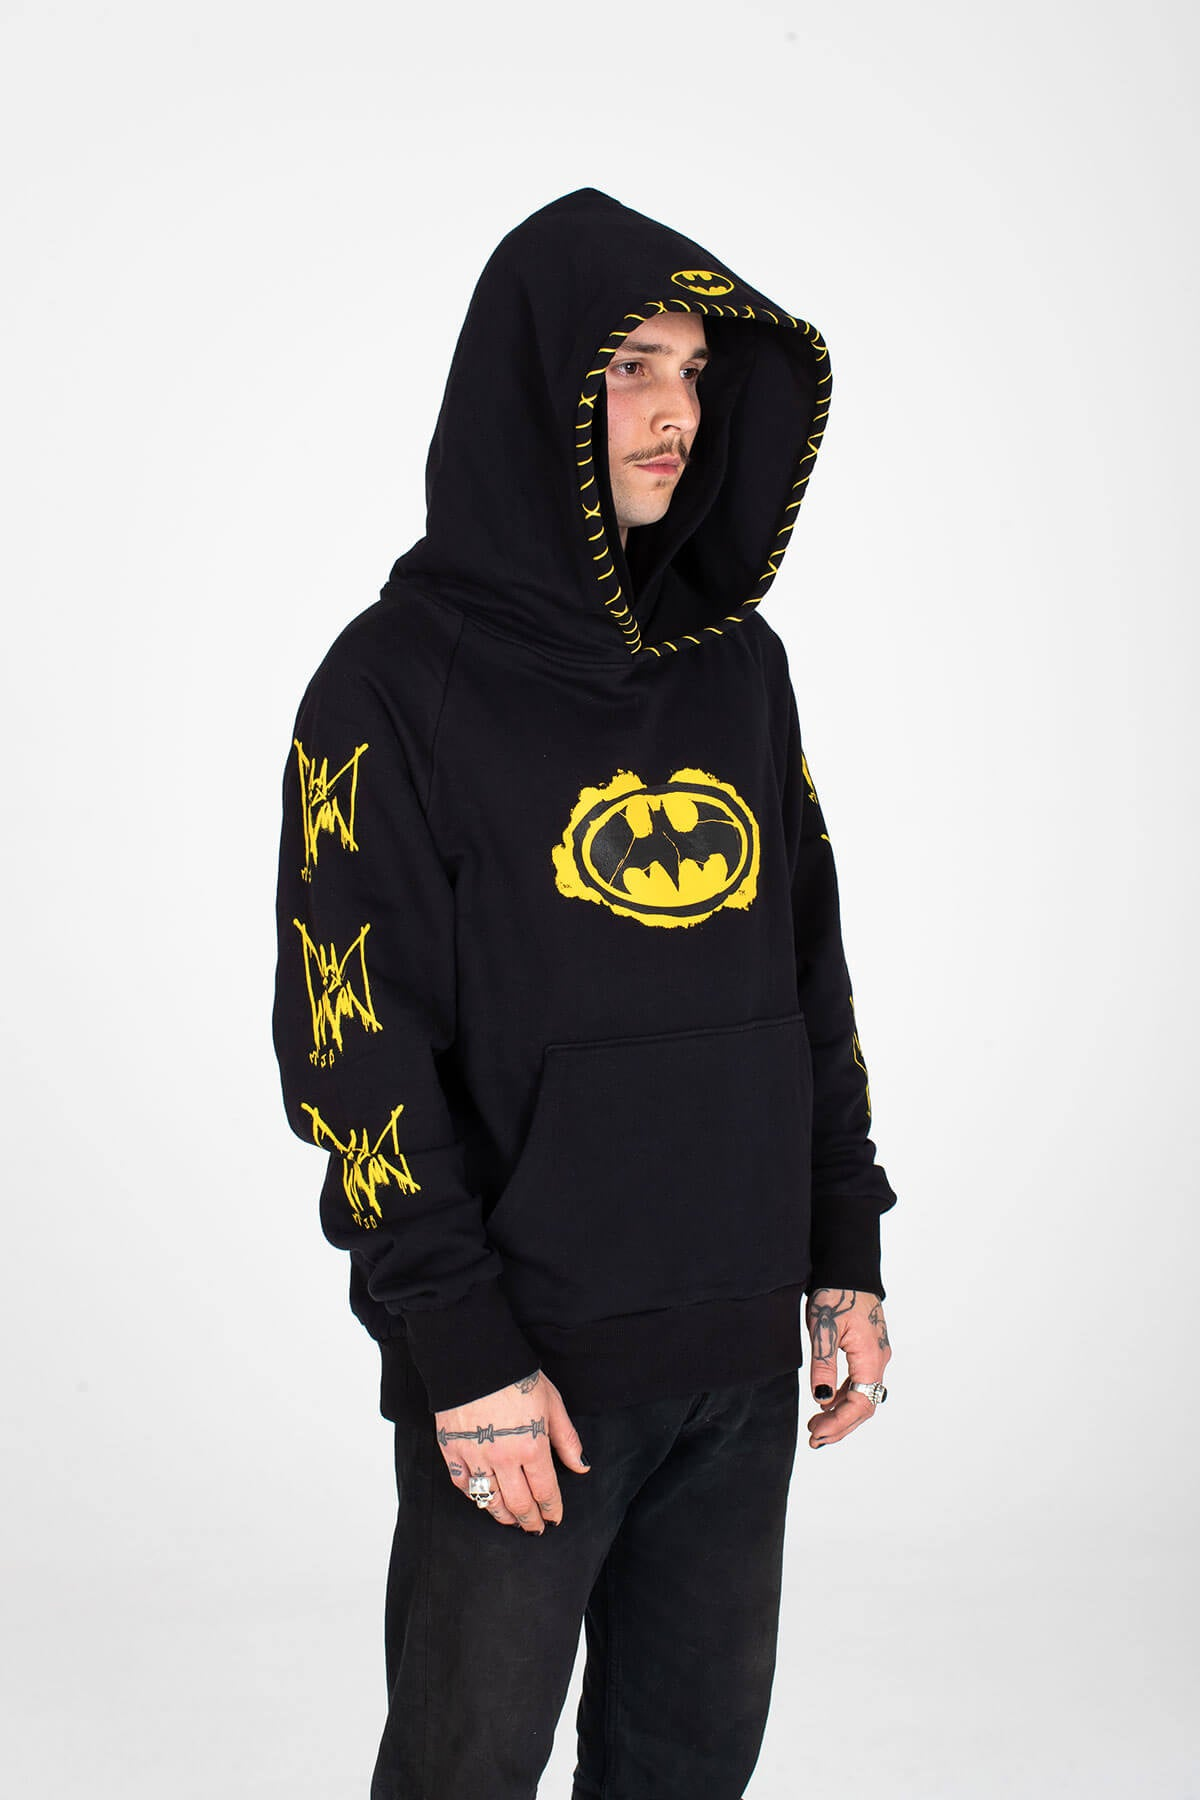 BATMAN X MJB DOUBLE HOODIE COMIC - MJB